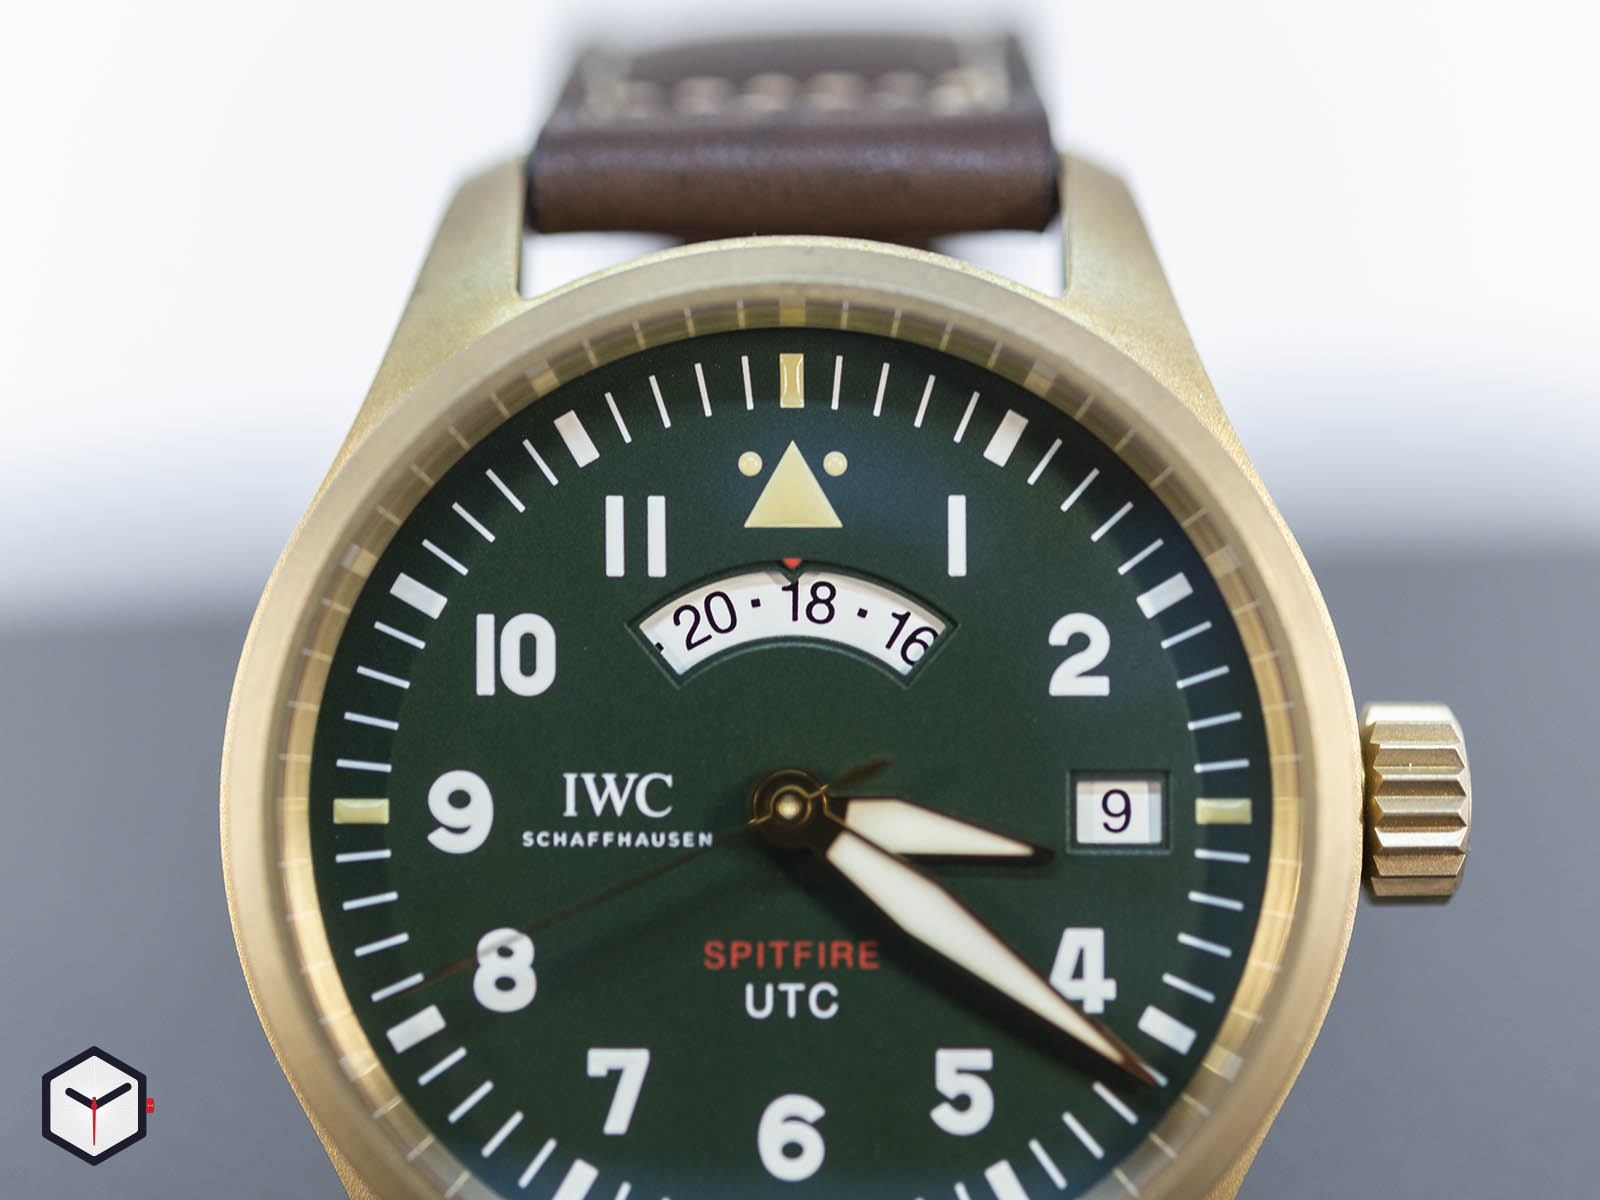 iw327101-iwc-pilot-s-watch-utc-spitfire-edition-mj271-4.jpg